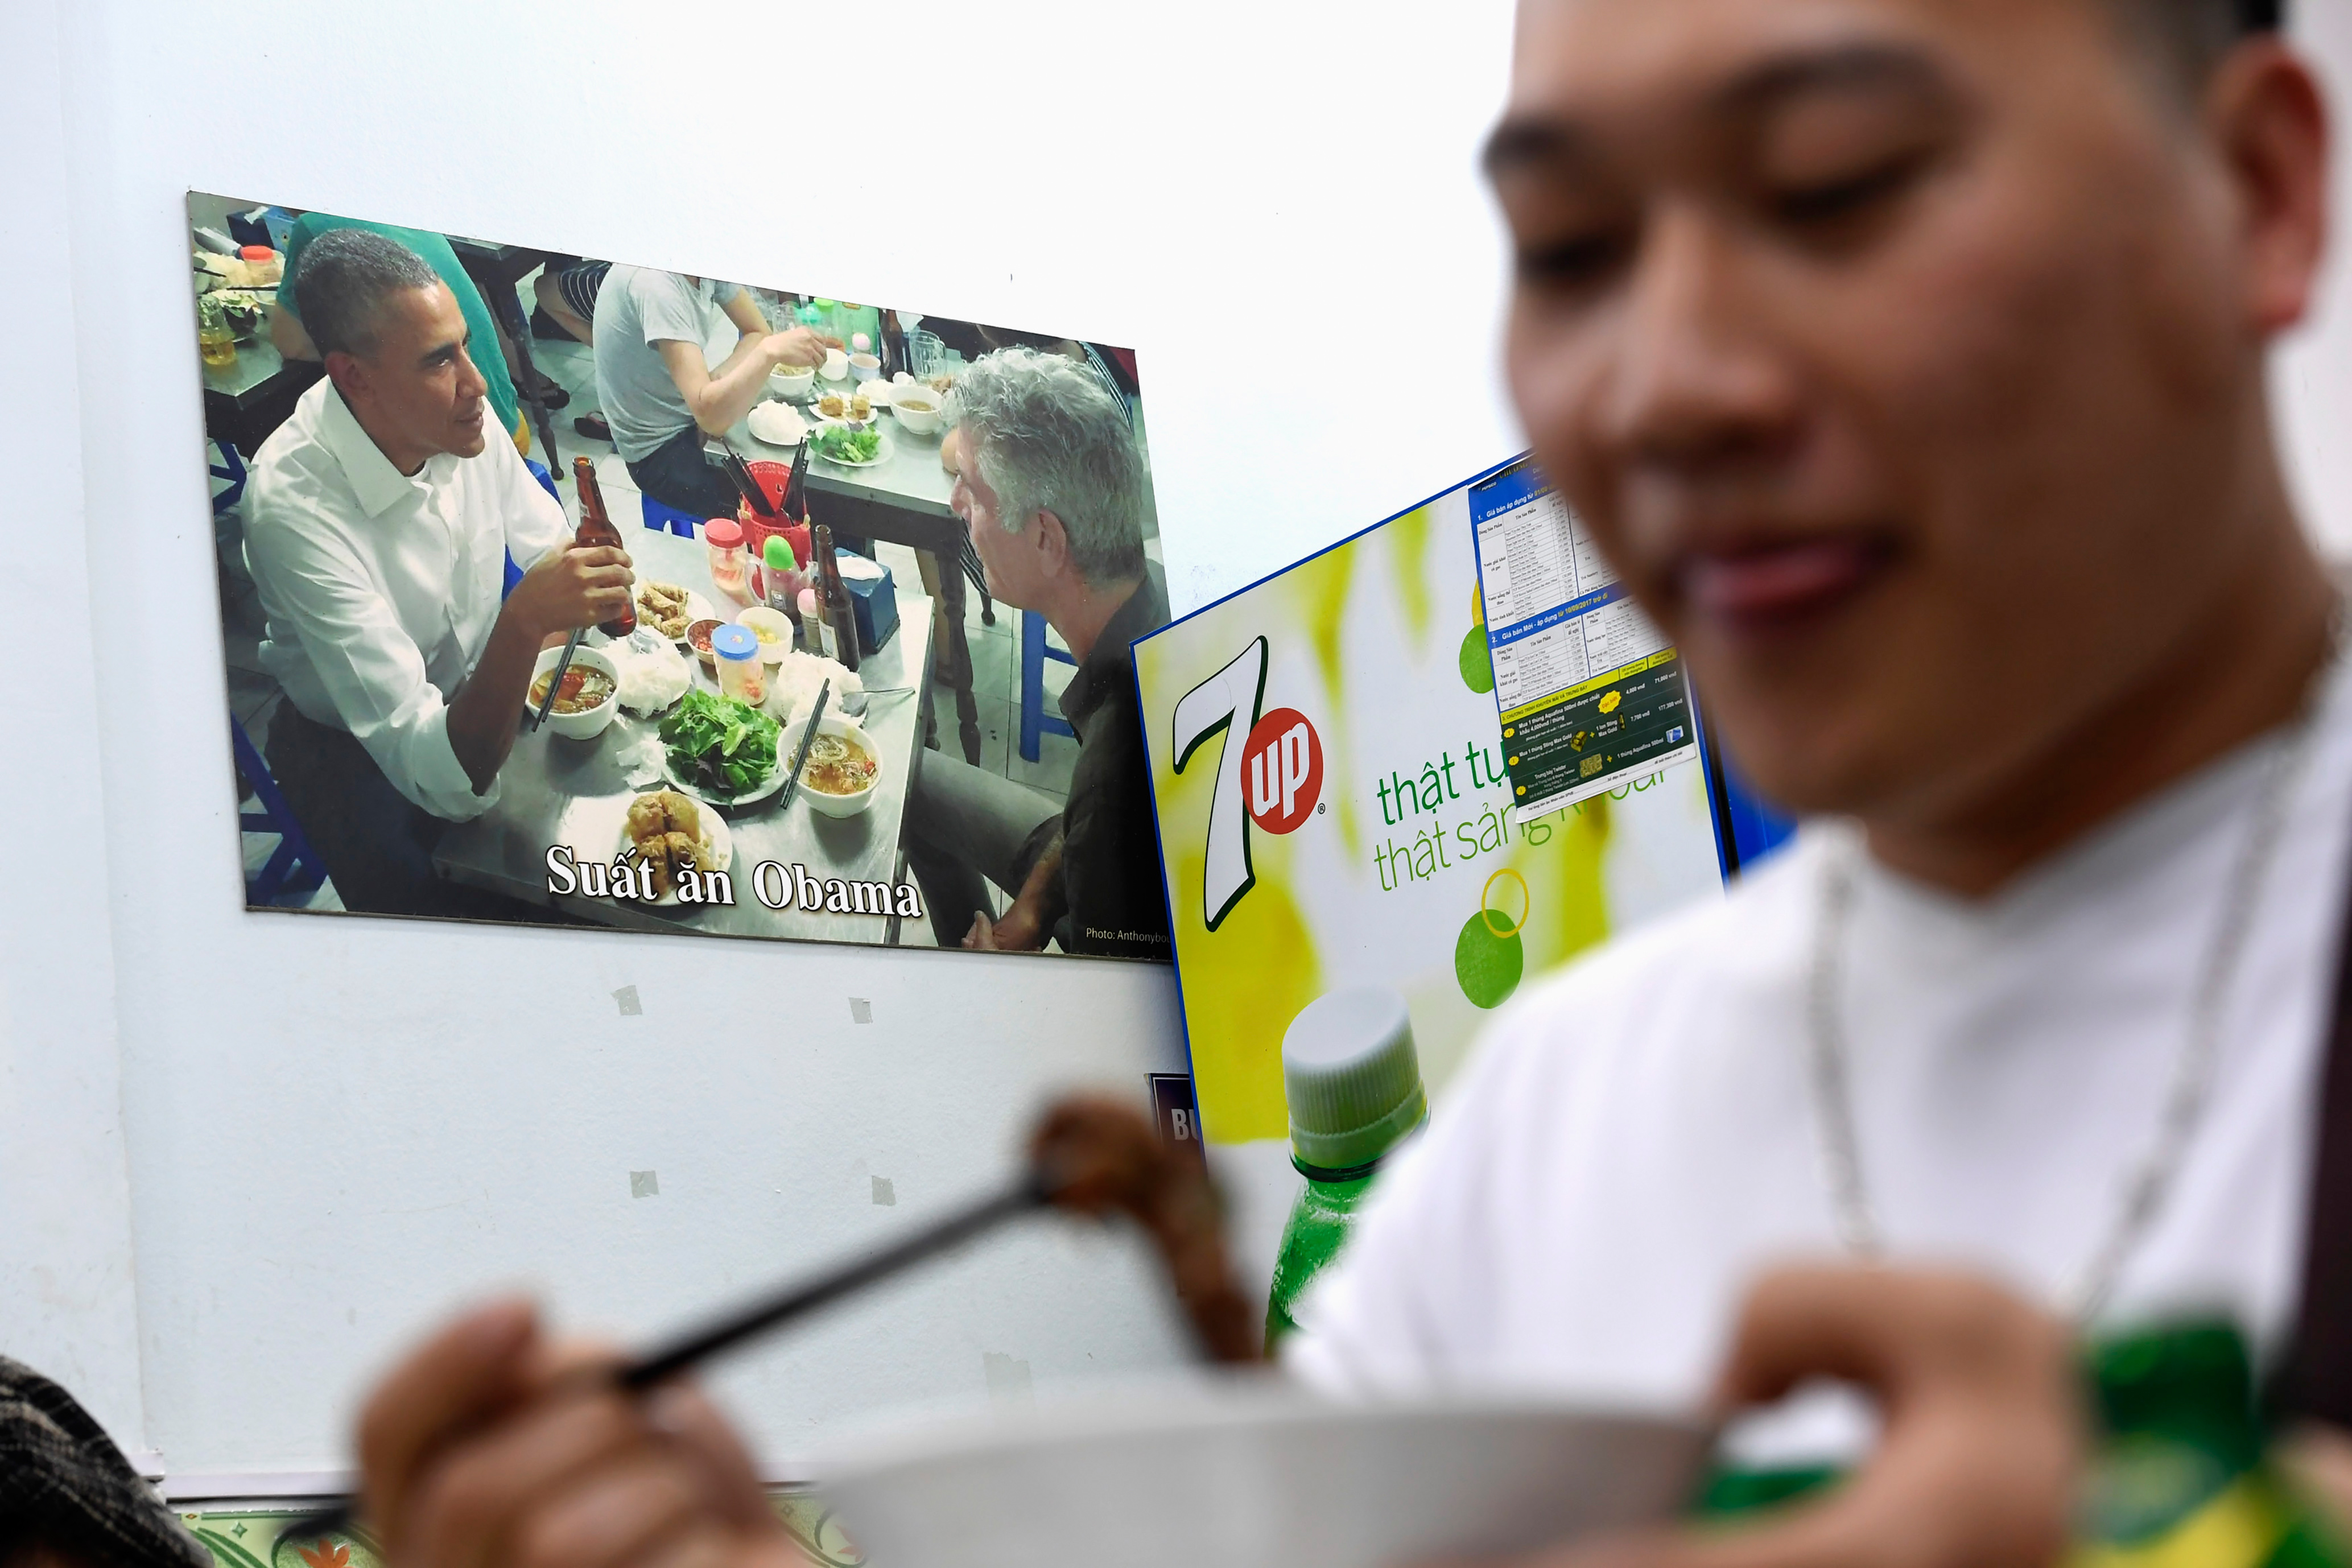 In this photograph taken on March 20, 2018, a customer enjoys a meal at Bun Cha Huong Lien restaurant, now dubbed  bun cha Obama  with a photograph of former U.S. President Barack Obama displayed on the wall, in Hanoi's old quarter.